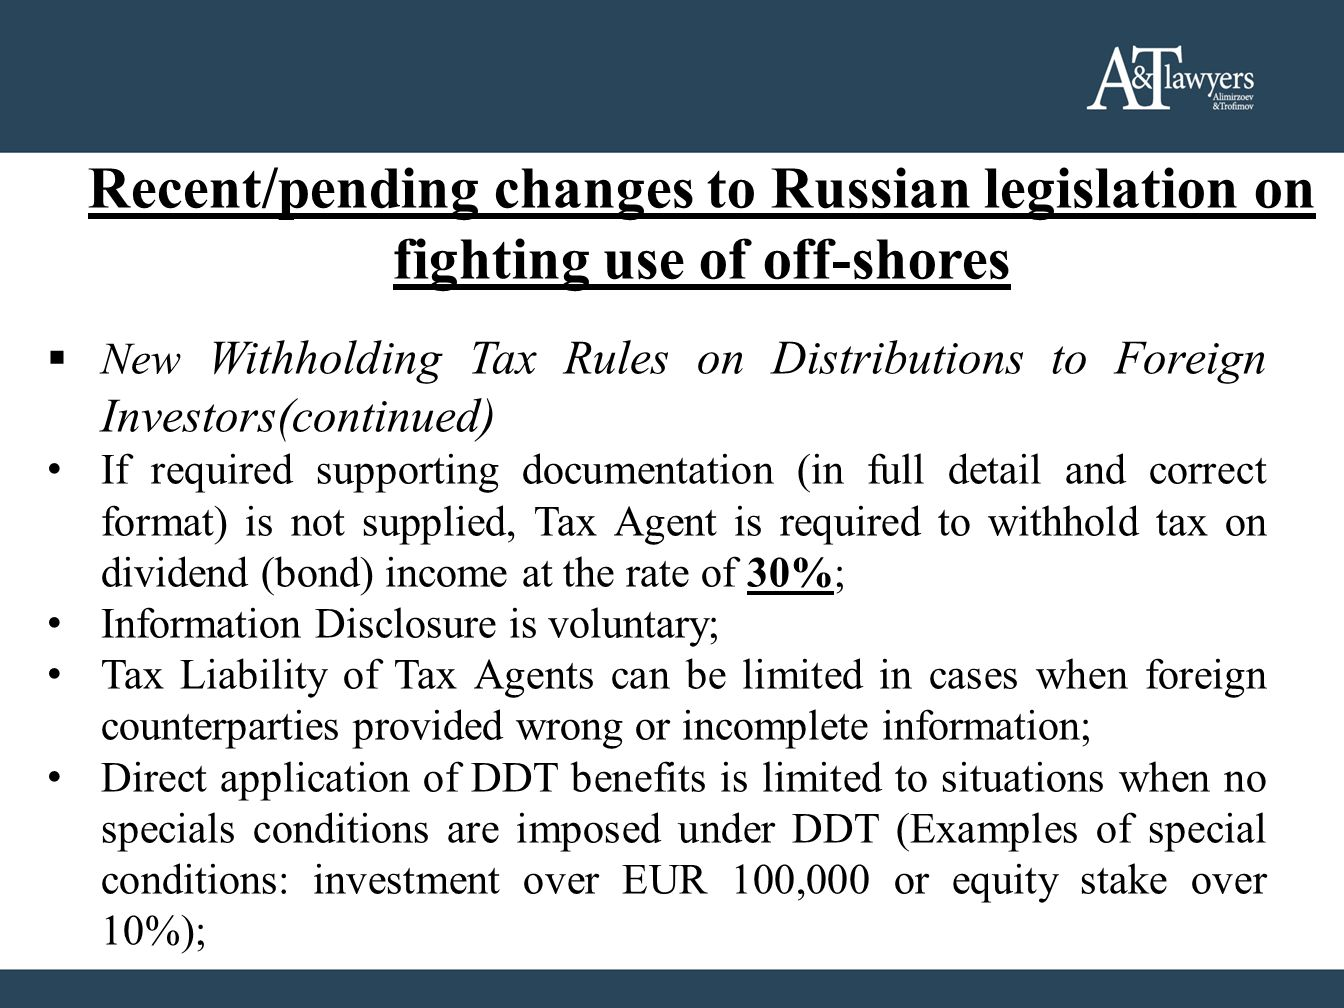 Recent/pending changes to Russian legislation on fighting use of off-shores  New Withholding Tax Rules on Distributions to Foreign Investors(continued) If required supporting documentation (in full detail and correct format) is not supplied, Tax Agent is required to withhold tax on dividend (bond) income at the rate of 30%; Information Disclosure is voluntary; Tax Liability of Tax Agents can be limited in cases when foreign counterparties provided wrong or incomplete information; Direct application of DDT benefits is limited to situations when no specials conditions are imposed under DDT (Examples of special conditions: investment over EUR 100,000 or equity stake over 10%);